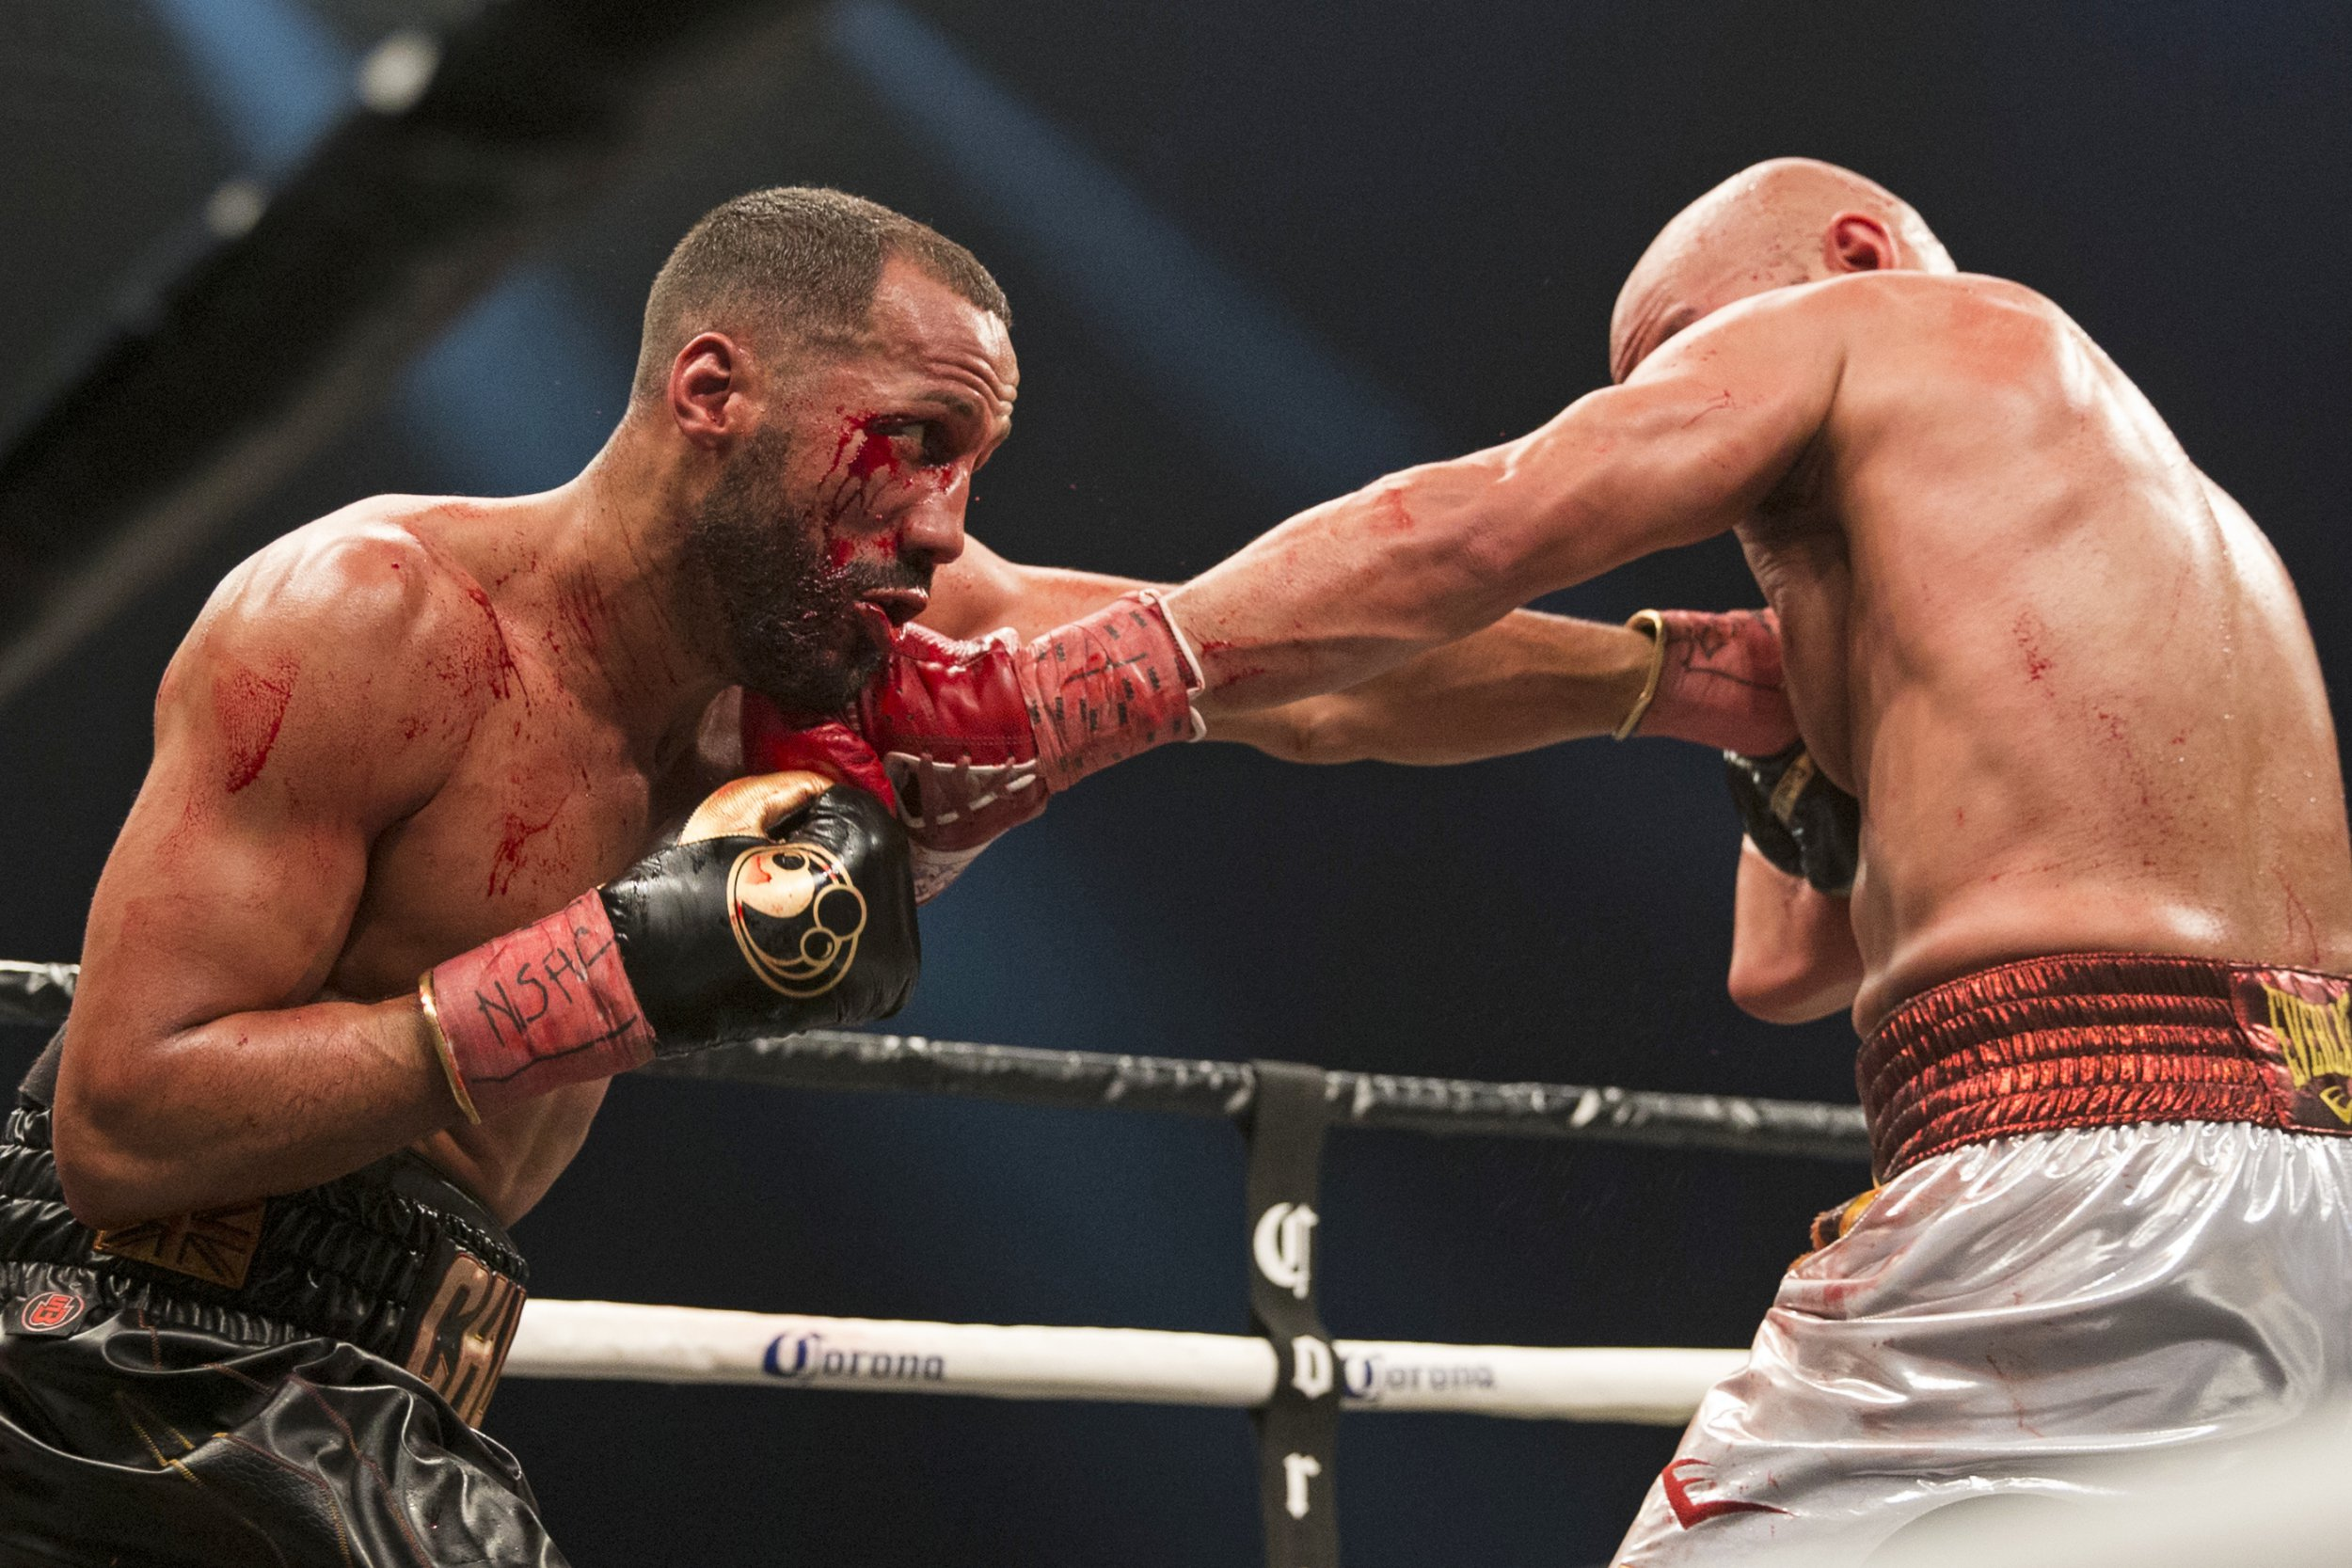 James DeGale claims revenge and wins back IBF title from Caleb Truax in bloody rematch